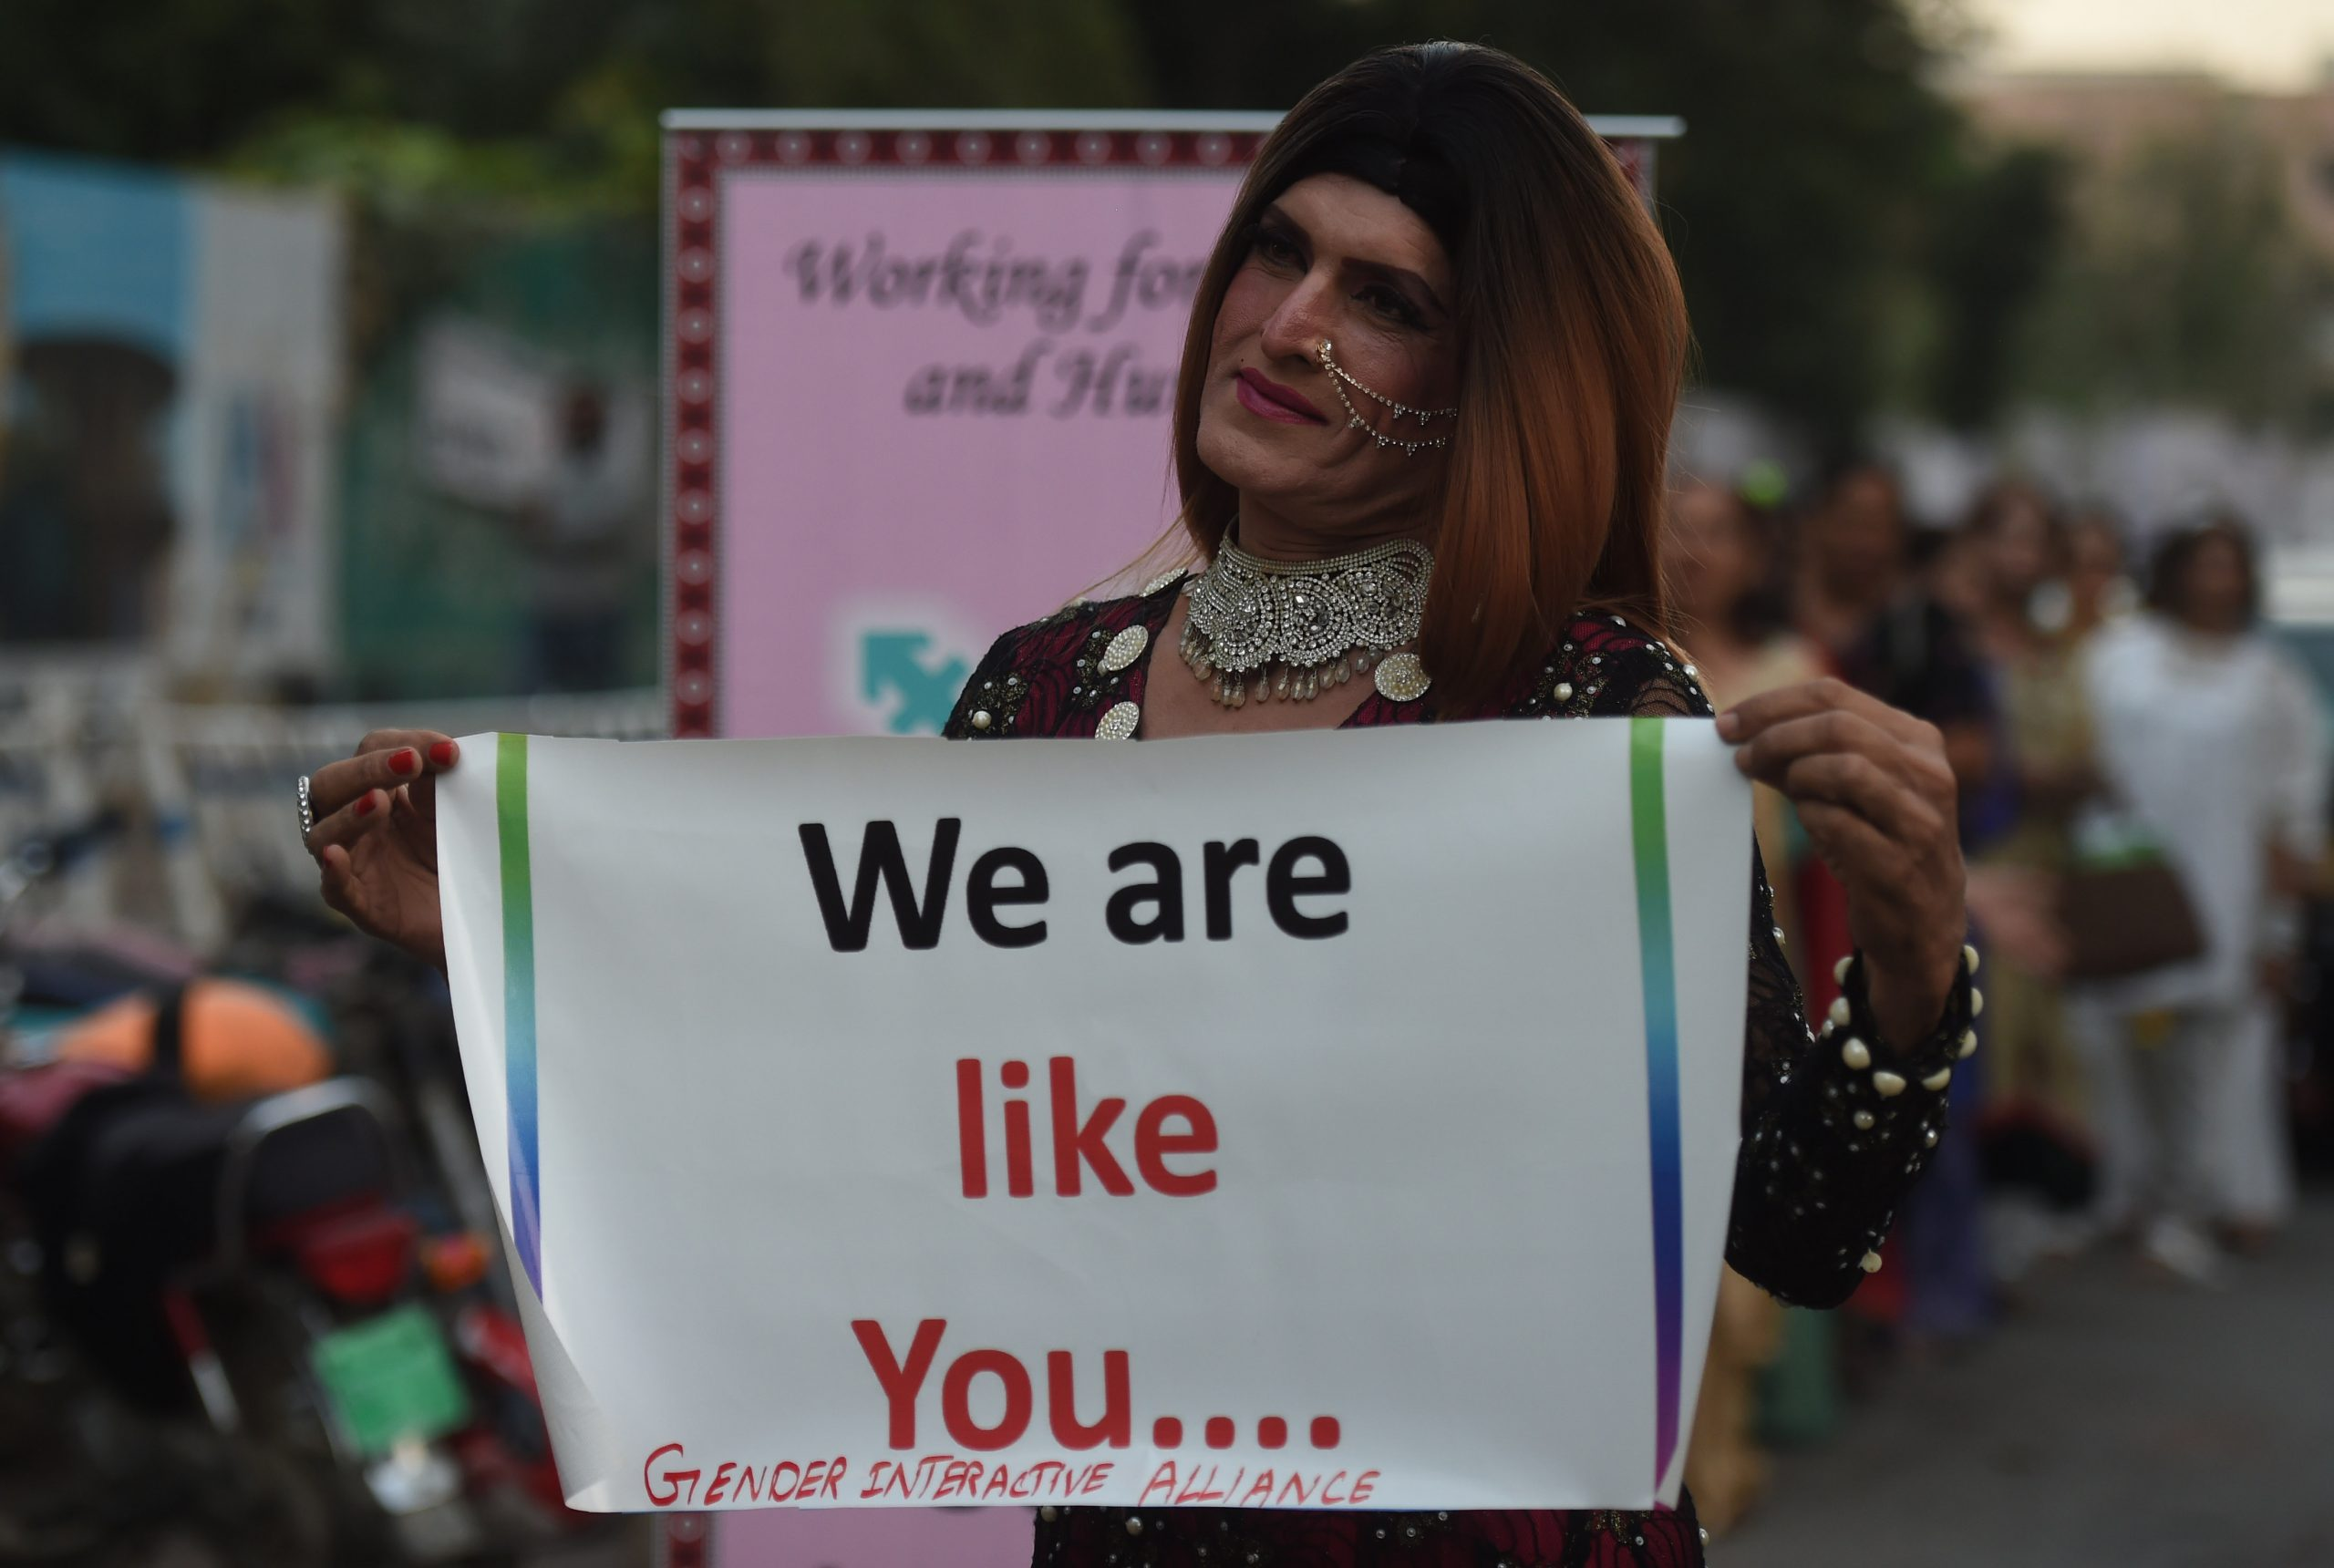 Initiatives taken by Pakistan Government for Transgender Community 2020